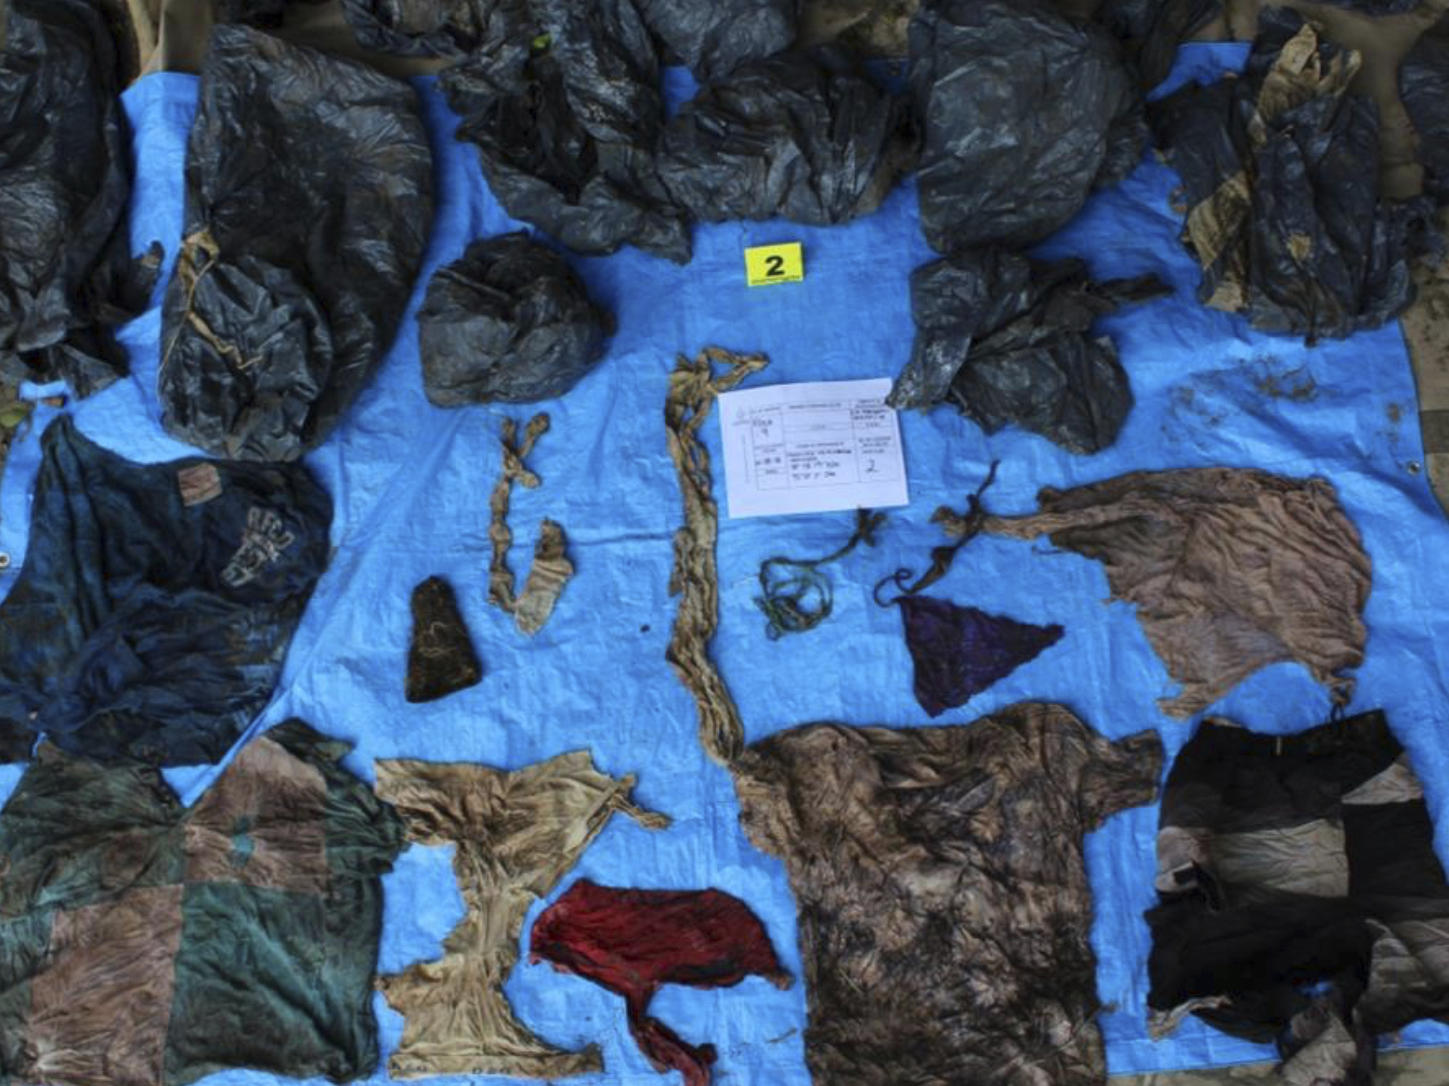 Skulls of 168 drug cartel victims found in Mexico mass grave